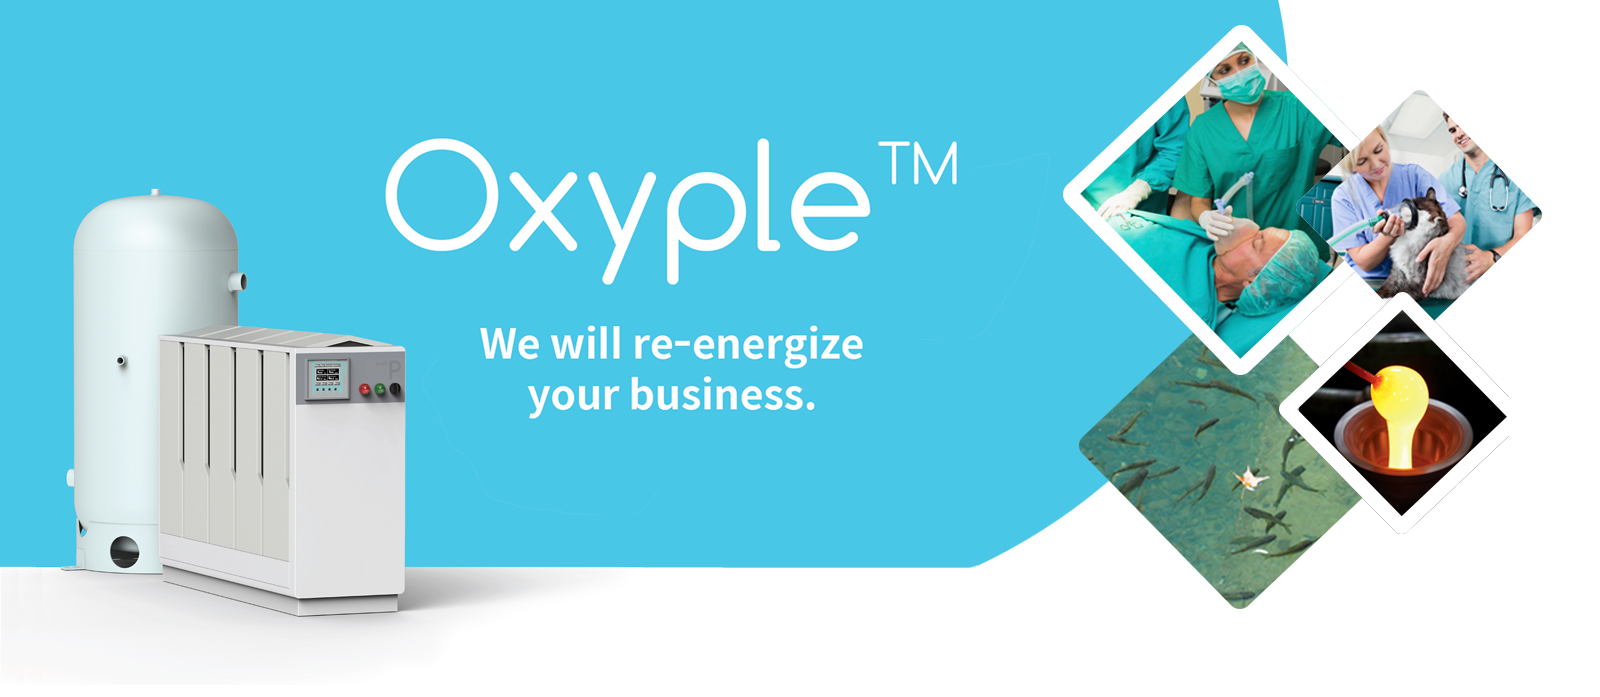 oxygen-concentrator oxyple we will re energize your business